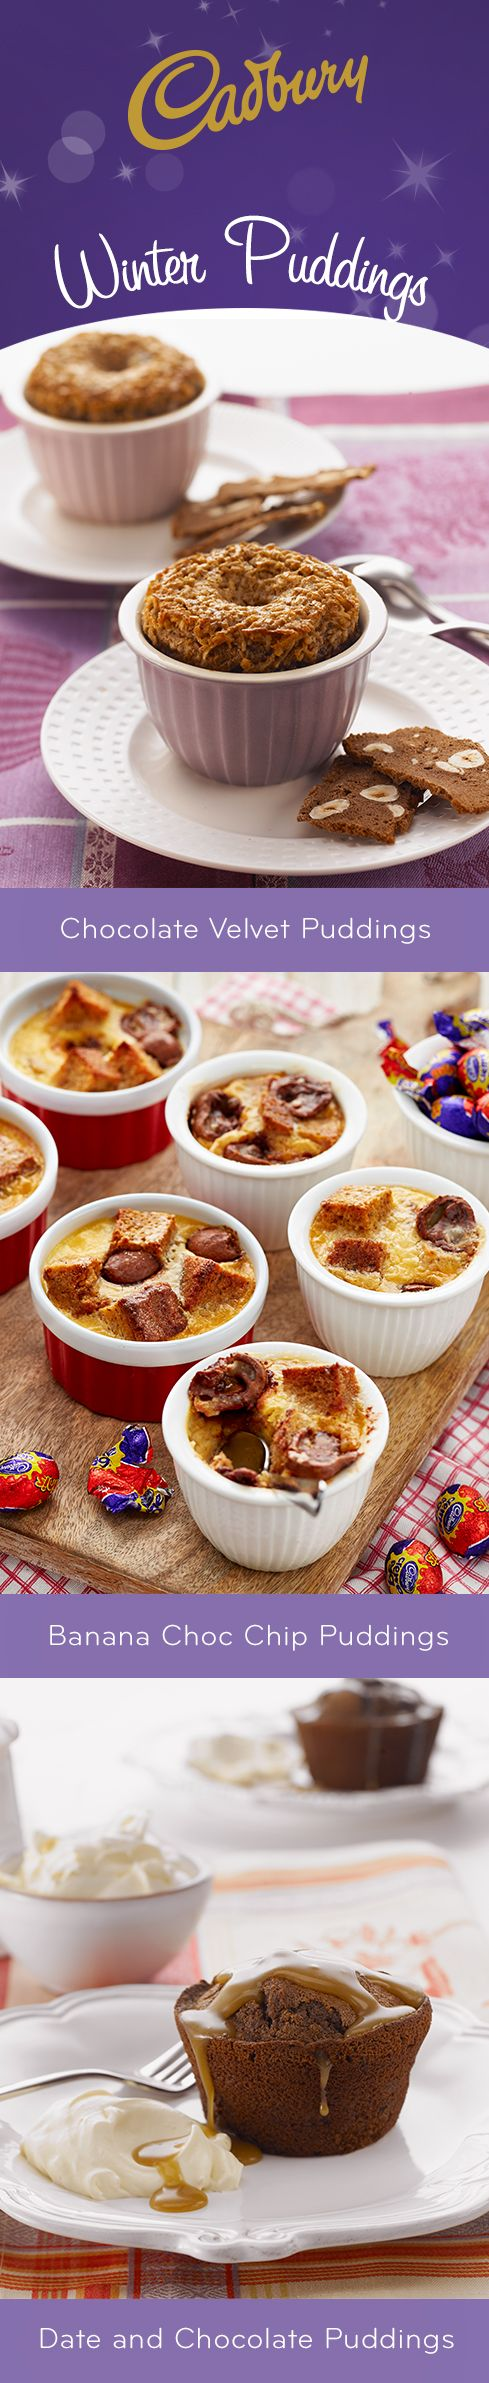 Somebody pass the spoon. The best respite from the cooler weather is a piping hot pudding! #bakeitcadbury #baking #chocolate #dessert #pudding